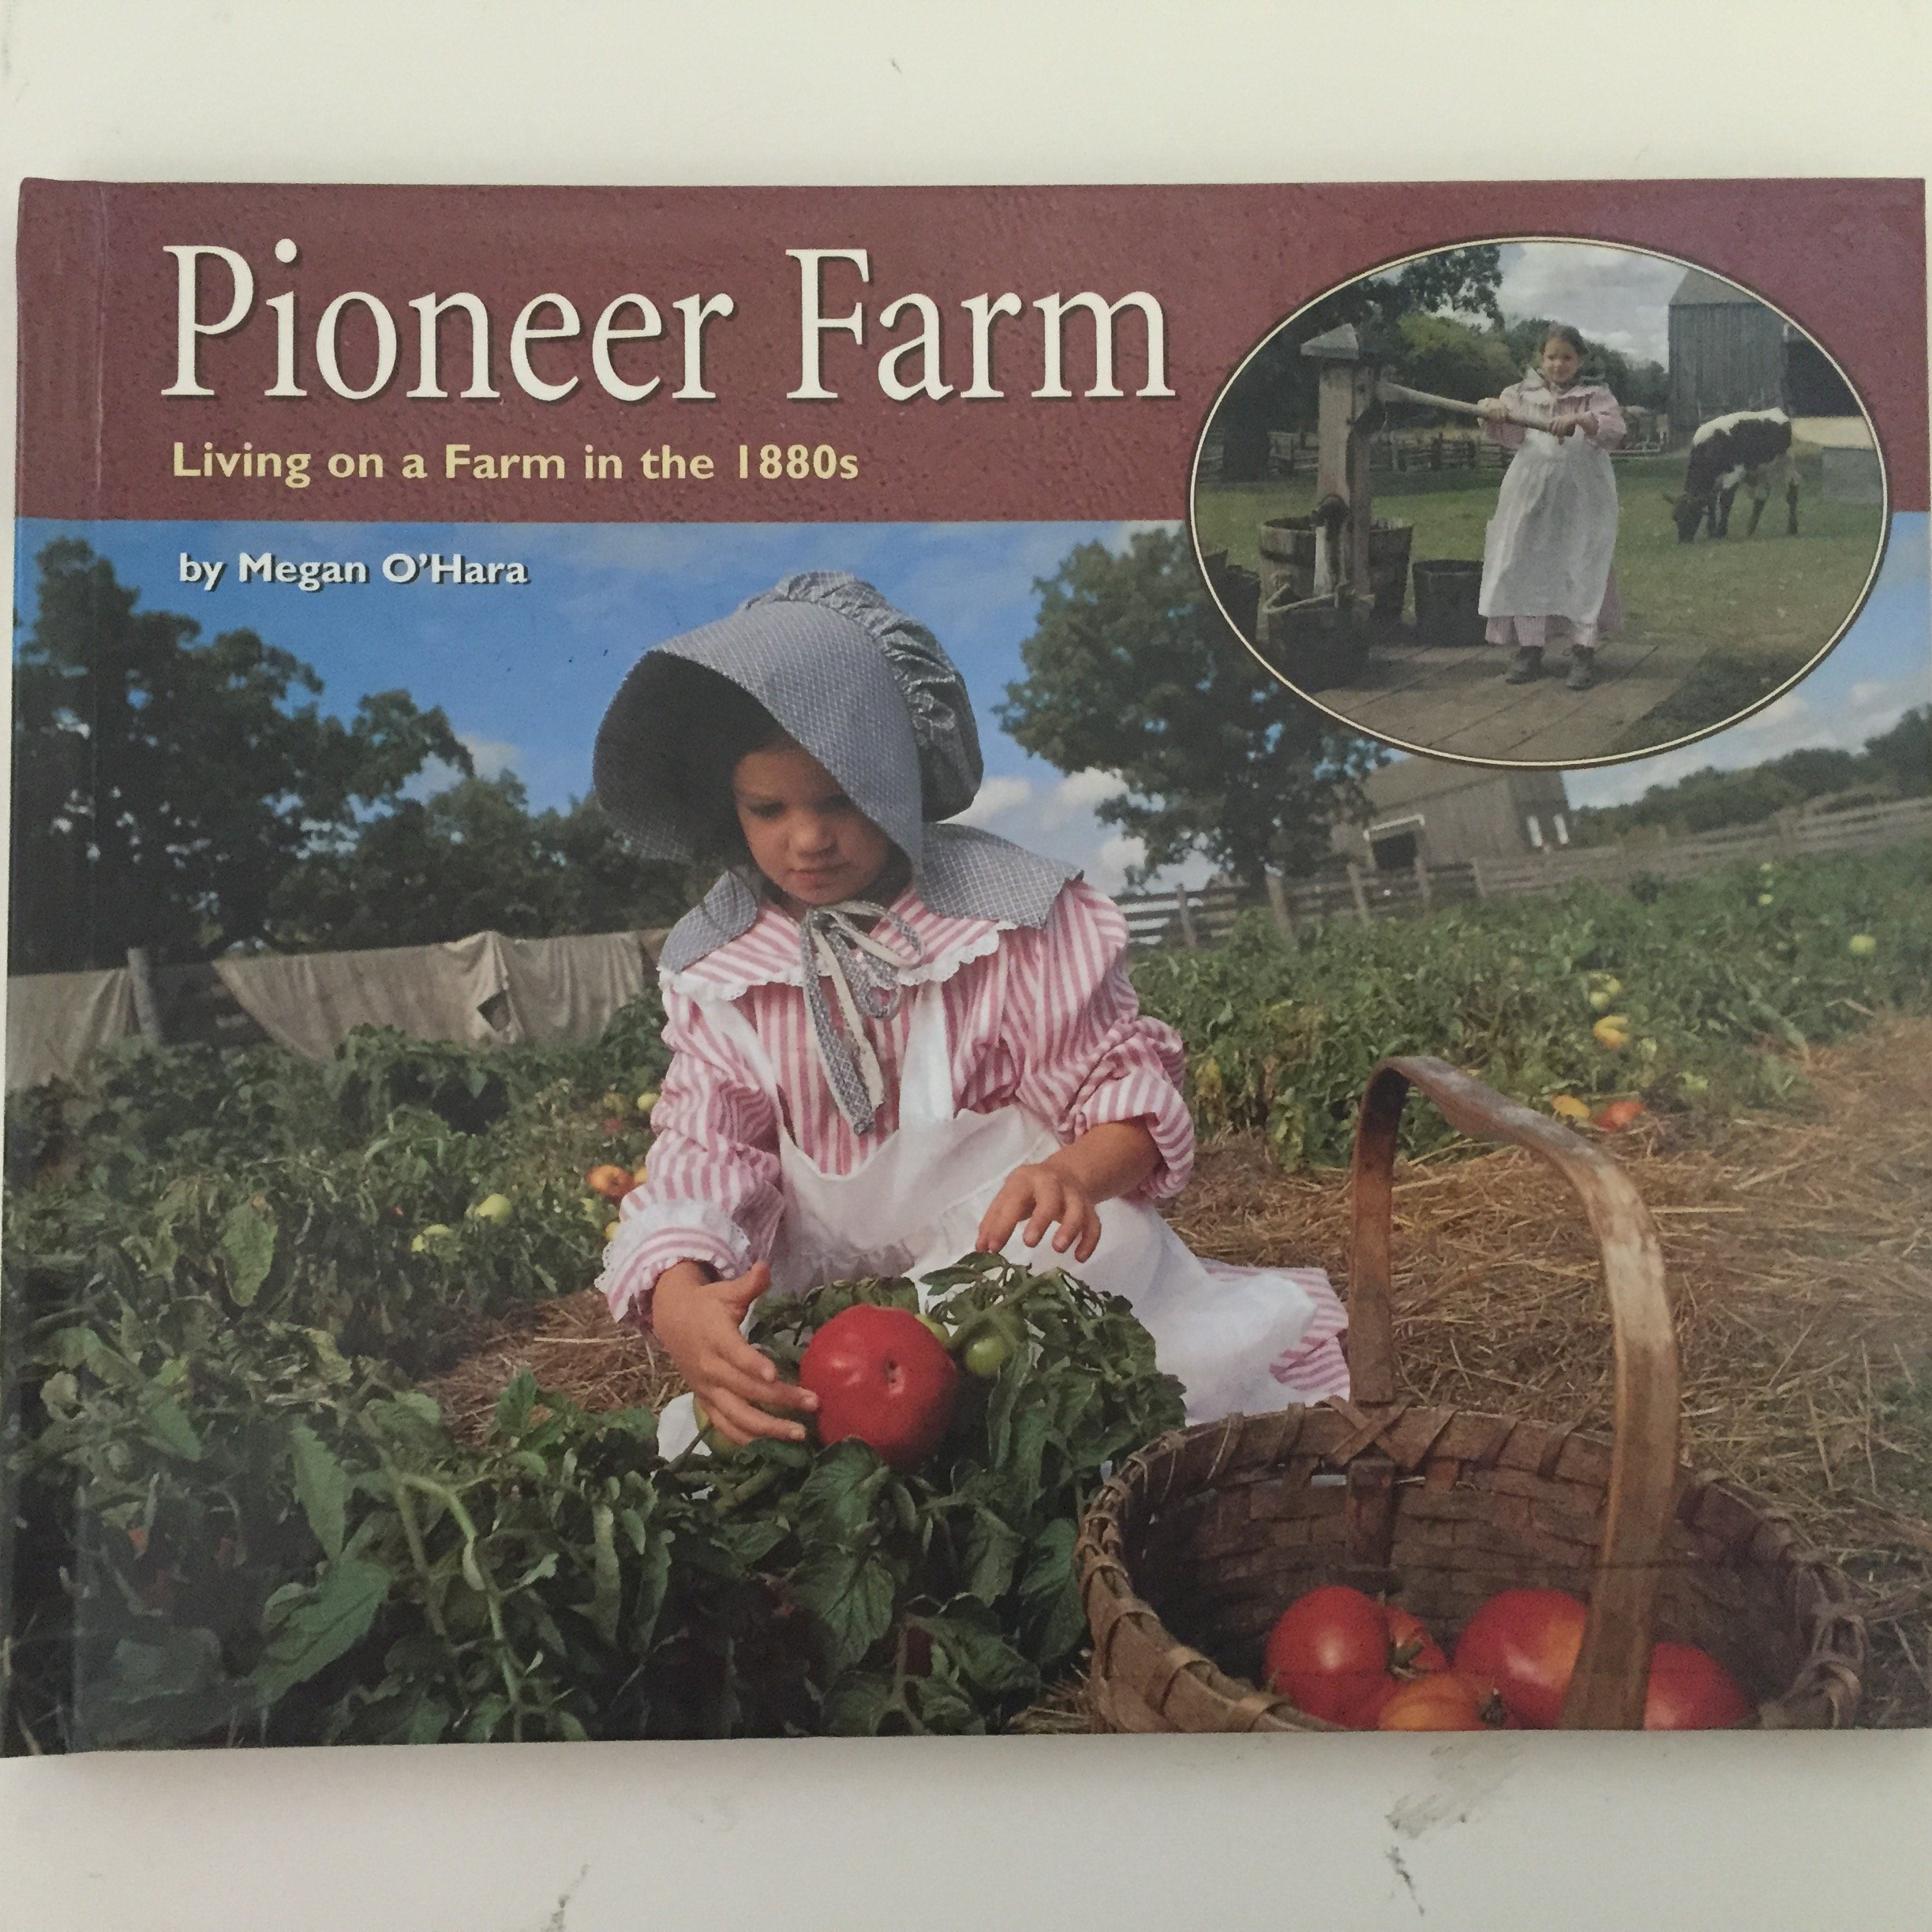 Pioneer Farm: Living on a Farm in the 1880s (Living History)